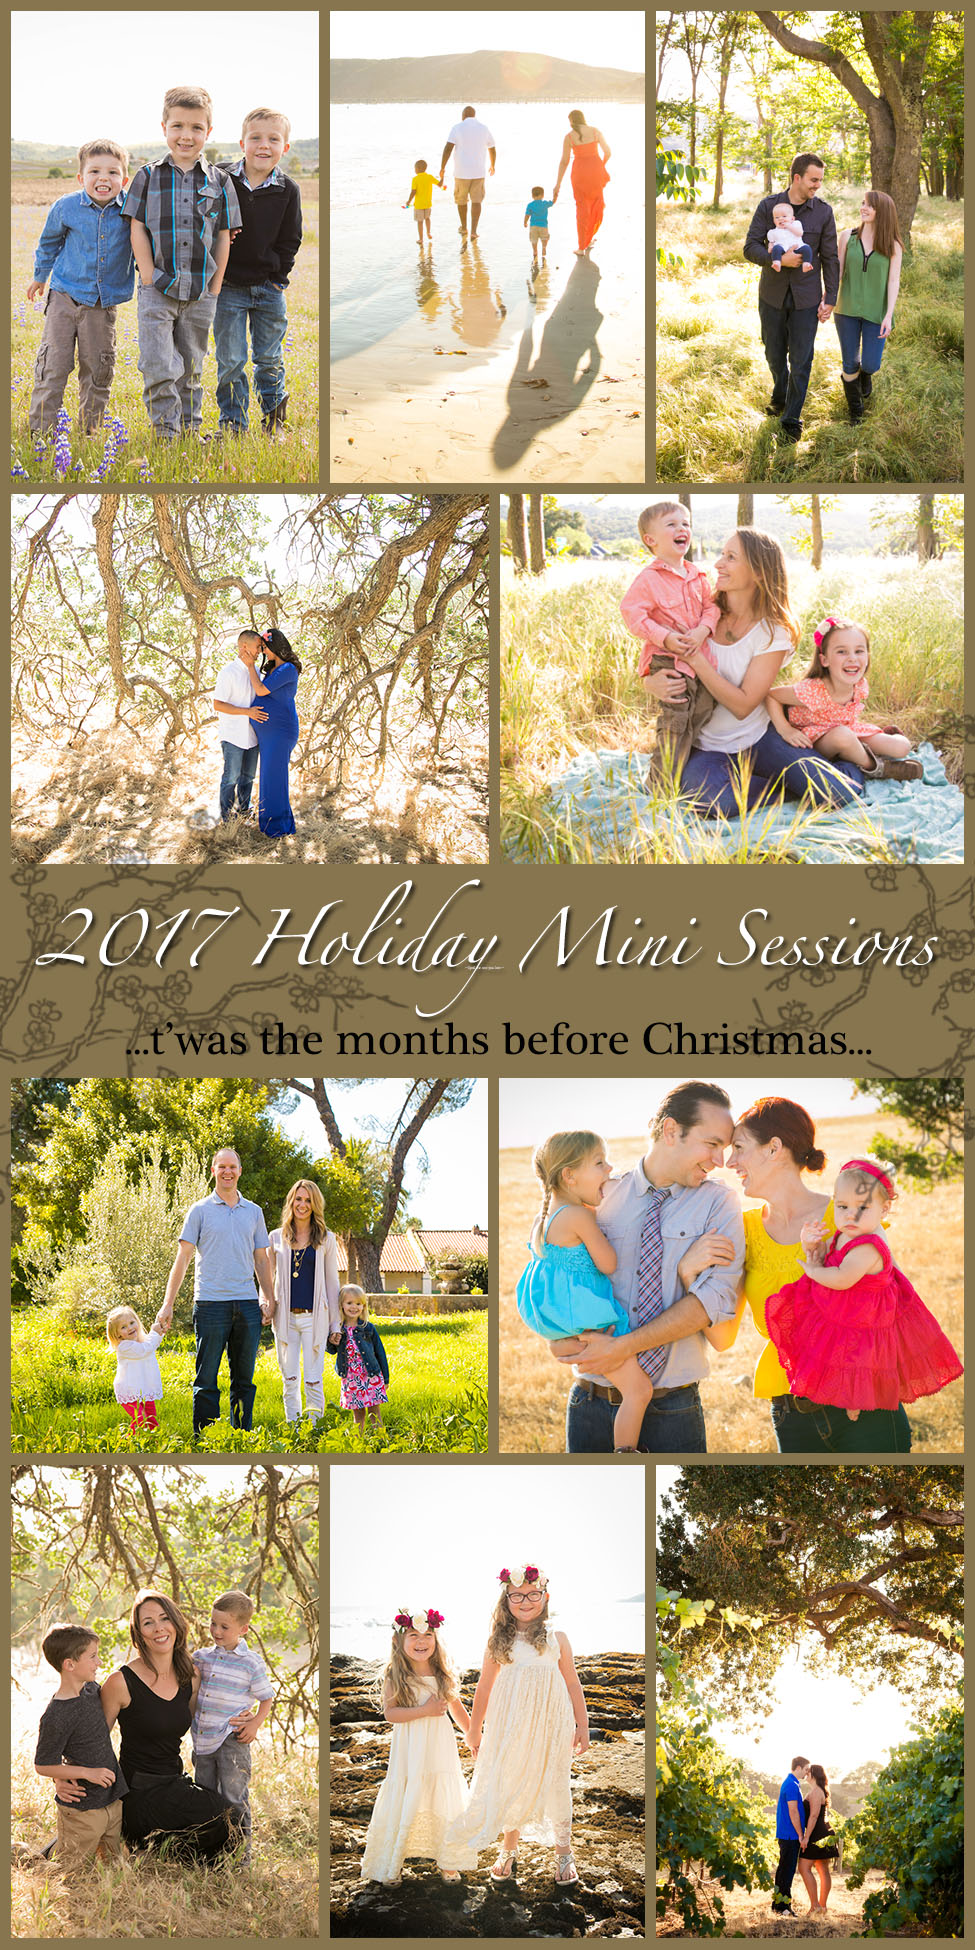 2017 Holiday Mini Sessions.jpg